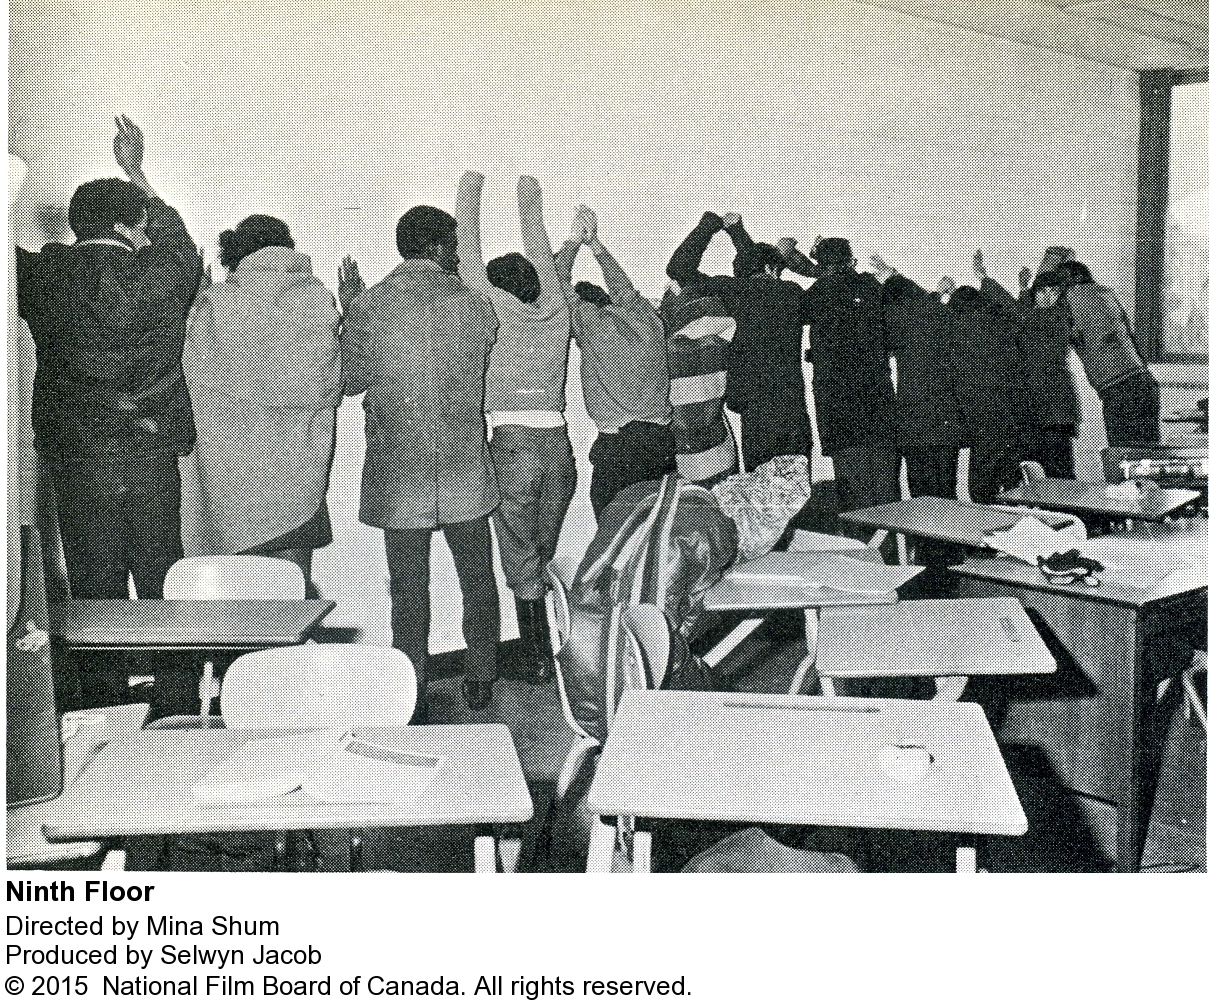 Ninth Floor revisits most explosive student uprising in Canadian history